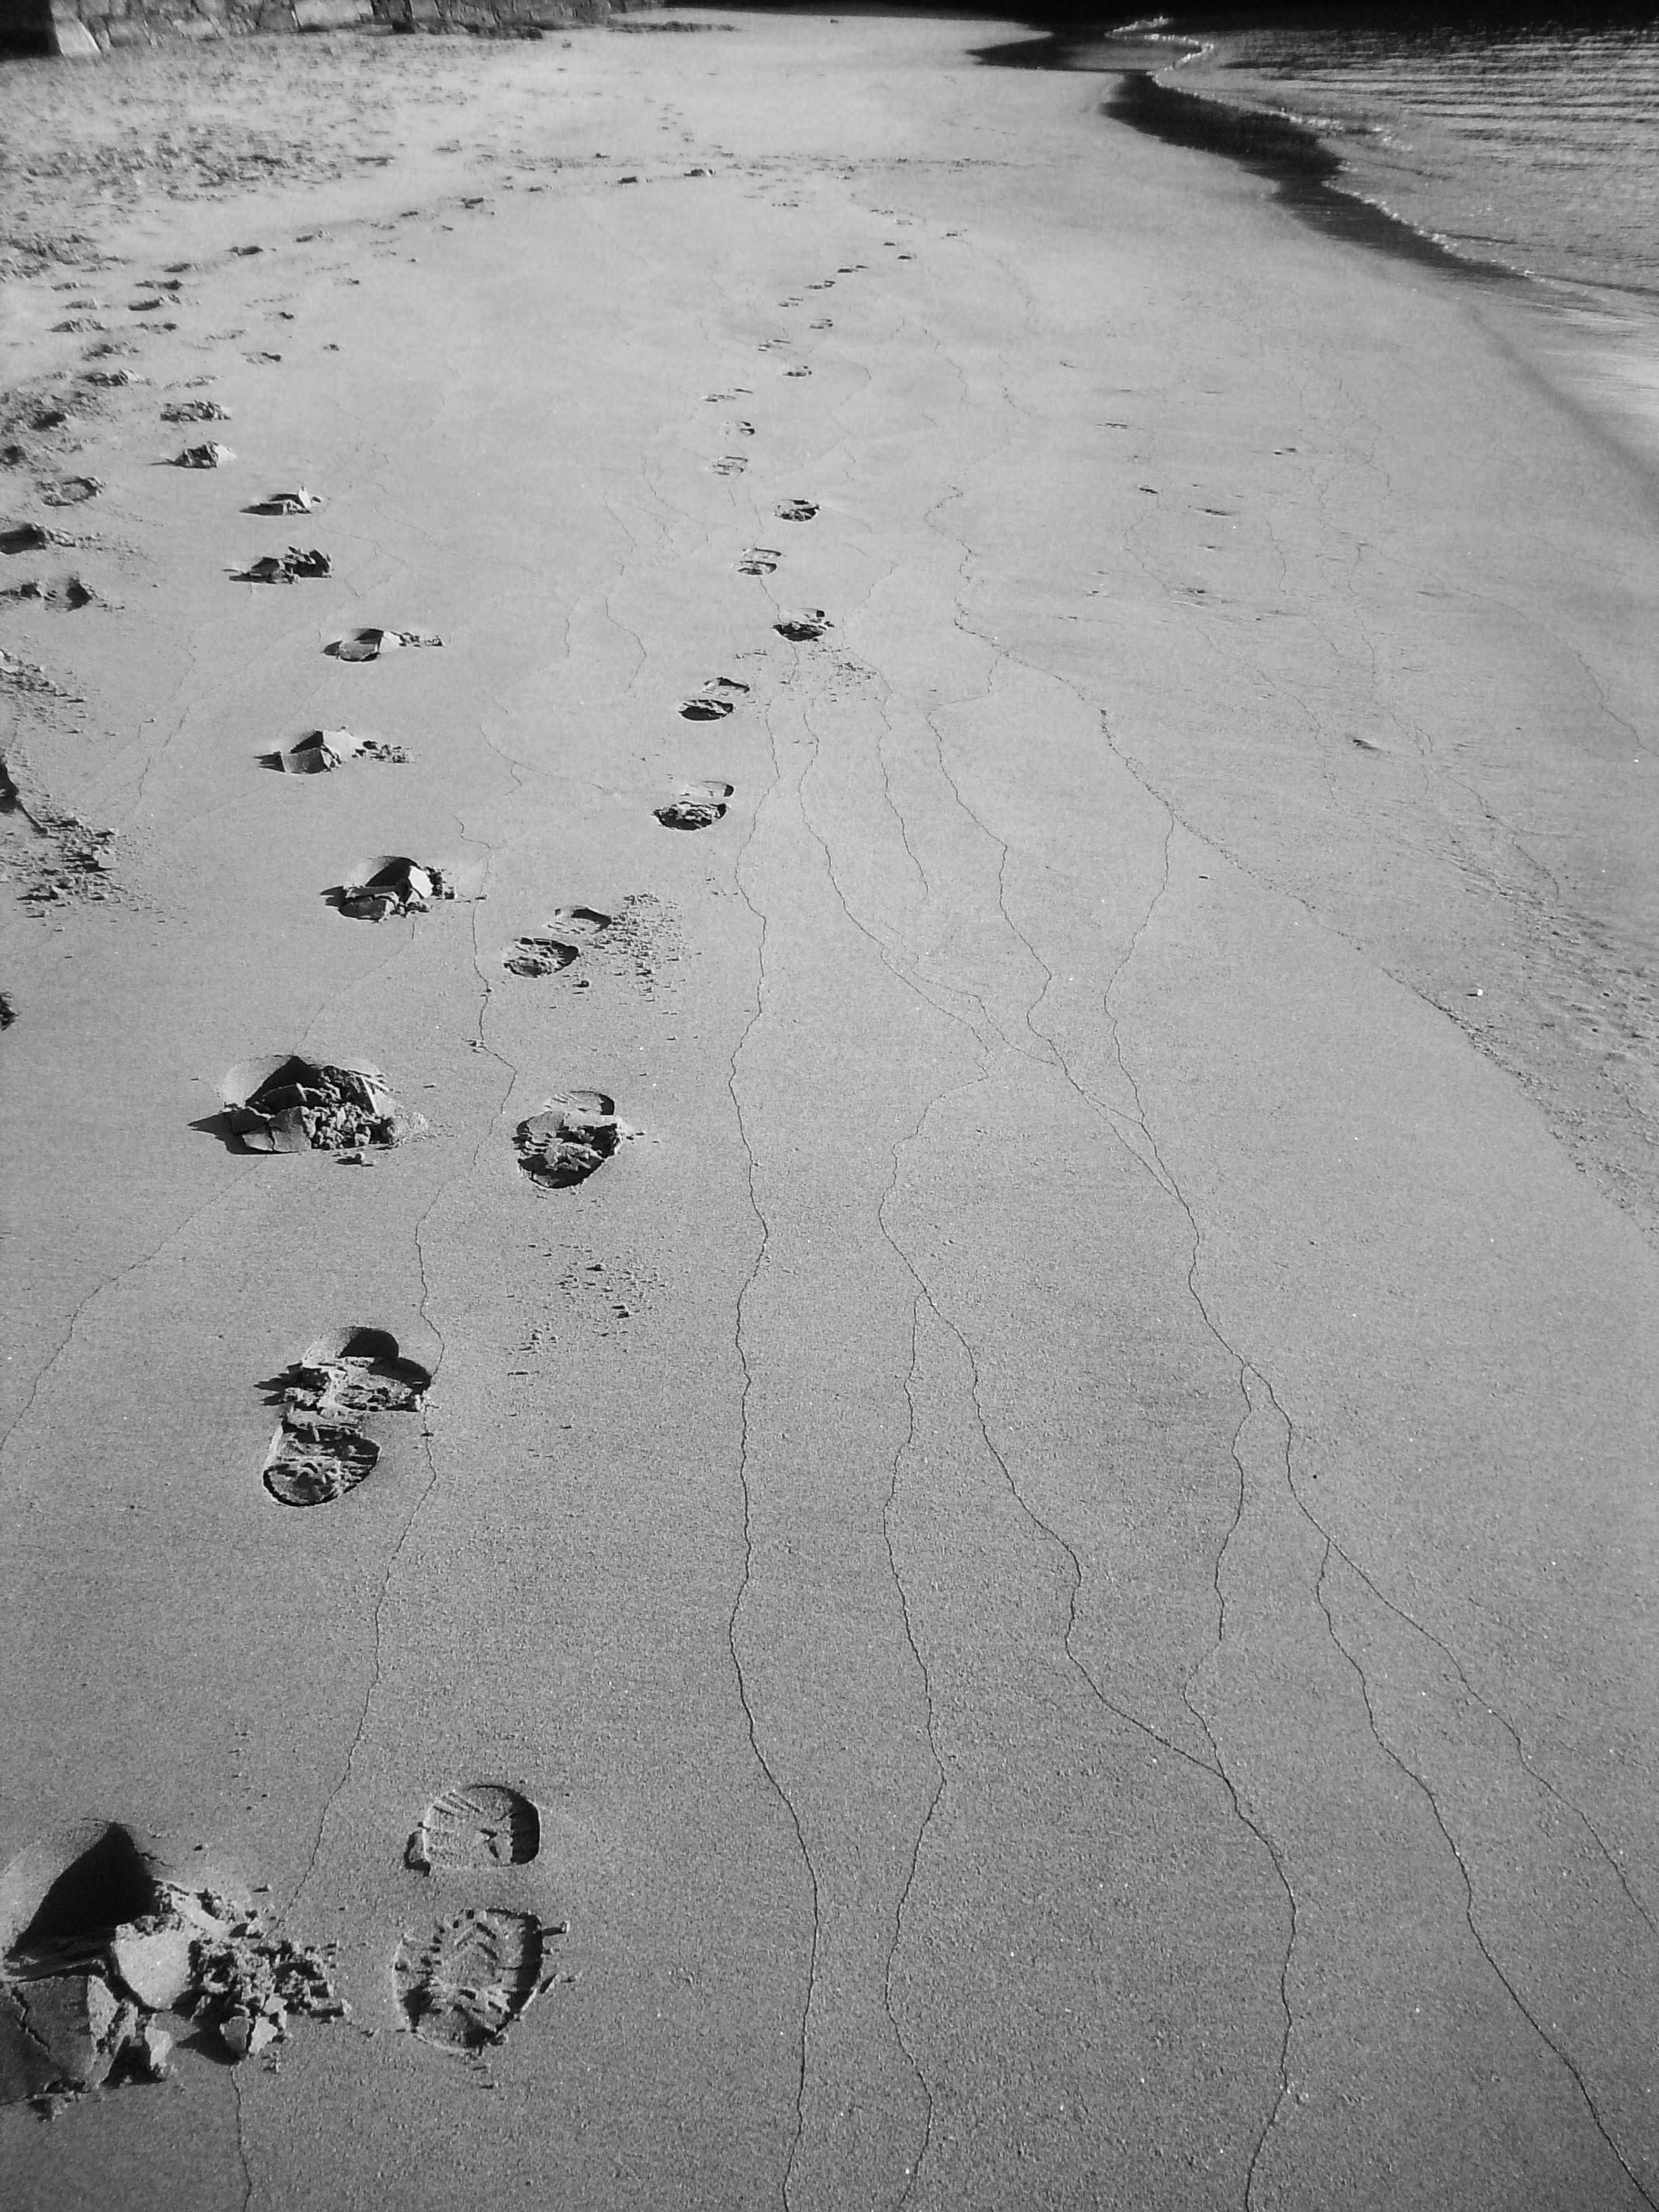 leave nothing but footprints.